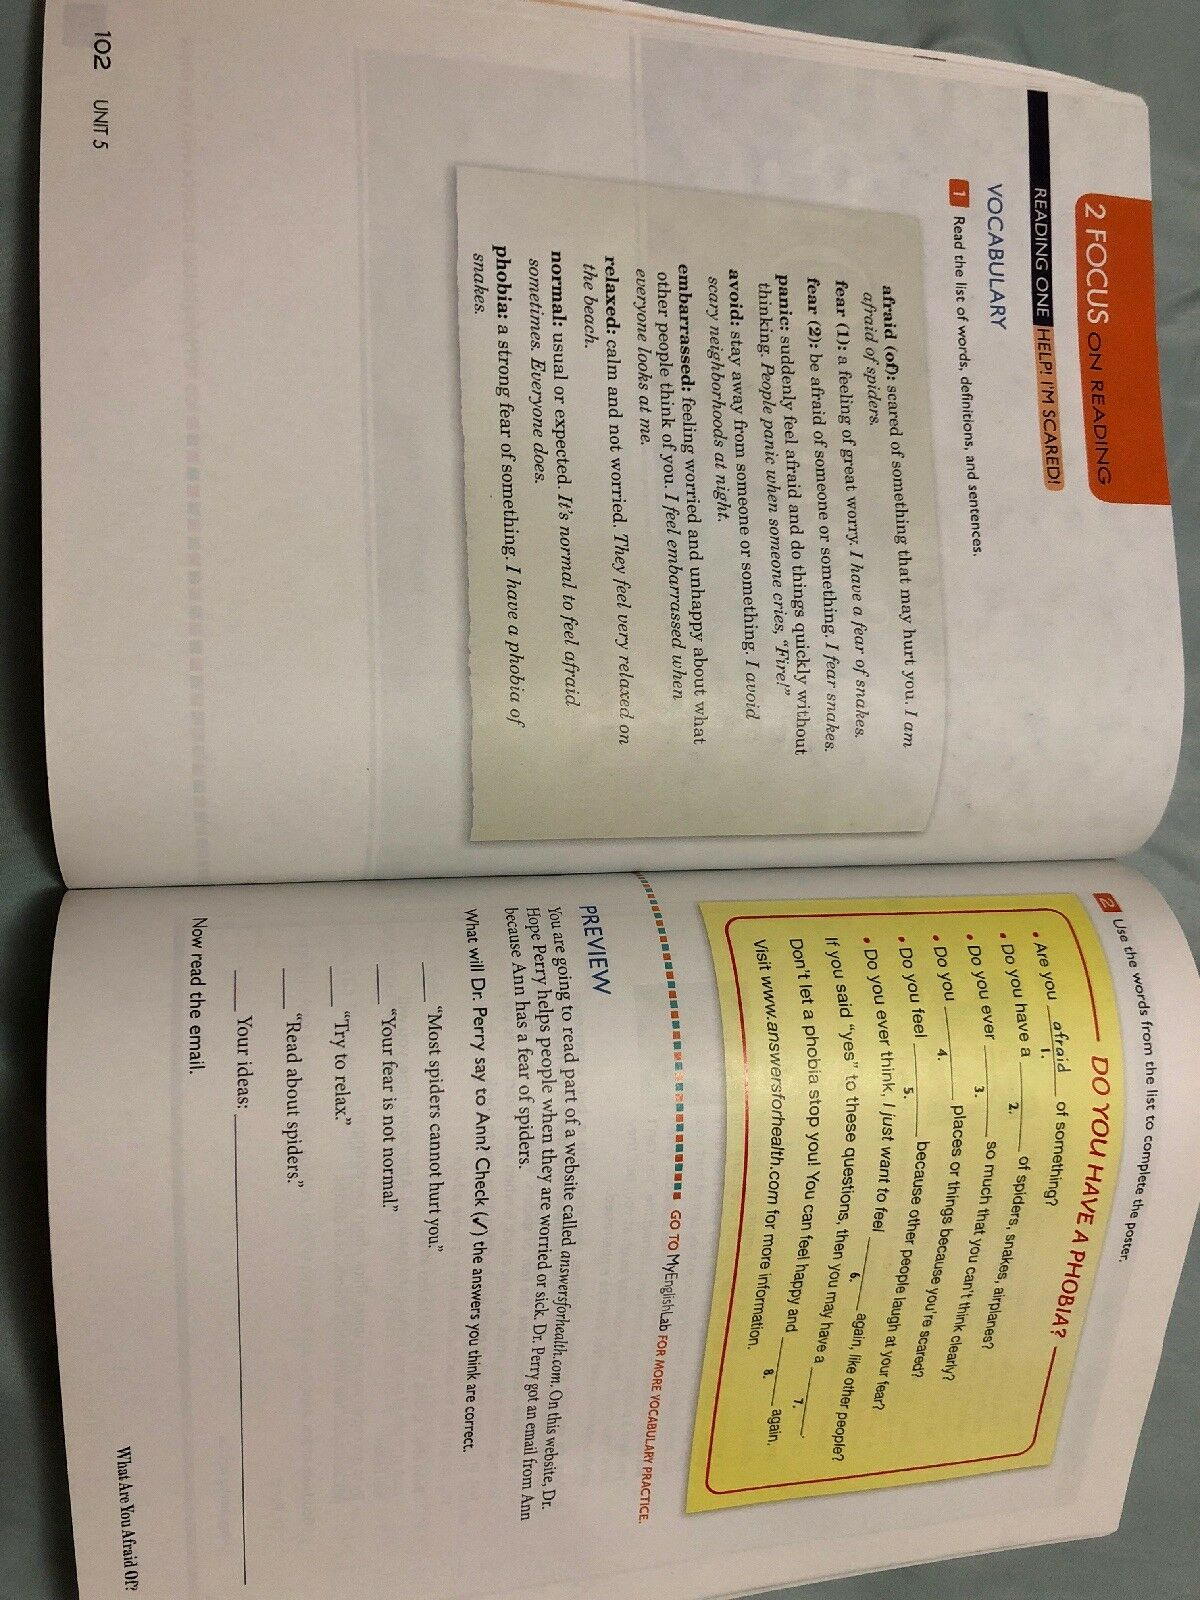 NorthStar Reading and Writing 1 with MyEnglishLab by John Beaumont and  Judith Yancey (2014, Paperback)   eBay